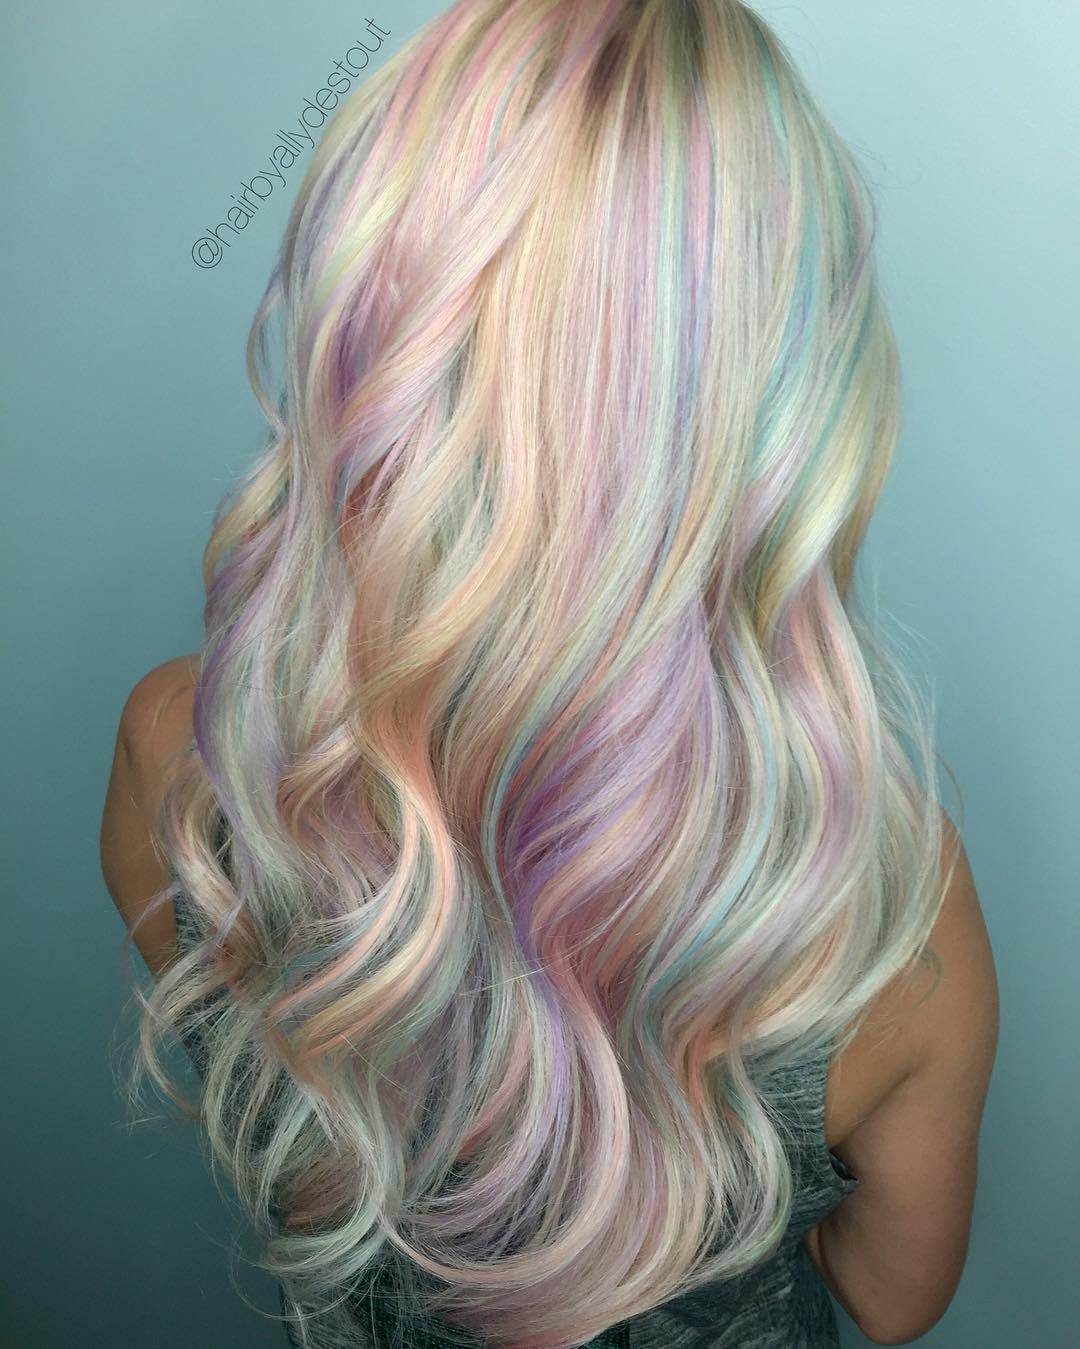 """467 Likes, 31 Comments - 🌸Ally DeStout🌸 Kettering, OHIO (@allydestouttt) on Instagram: """"💖OPAL HAIR💖 my first time trying out this trend and I am so pleased! Unicorns DO exist! I had one…"""""""